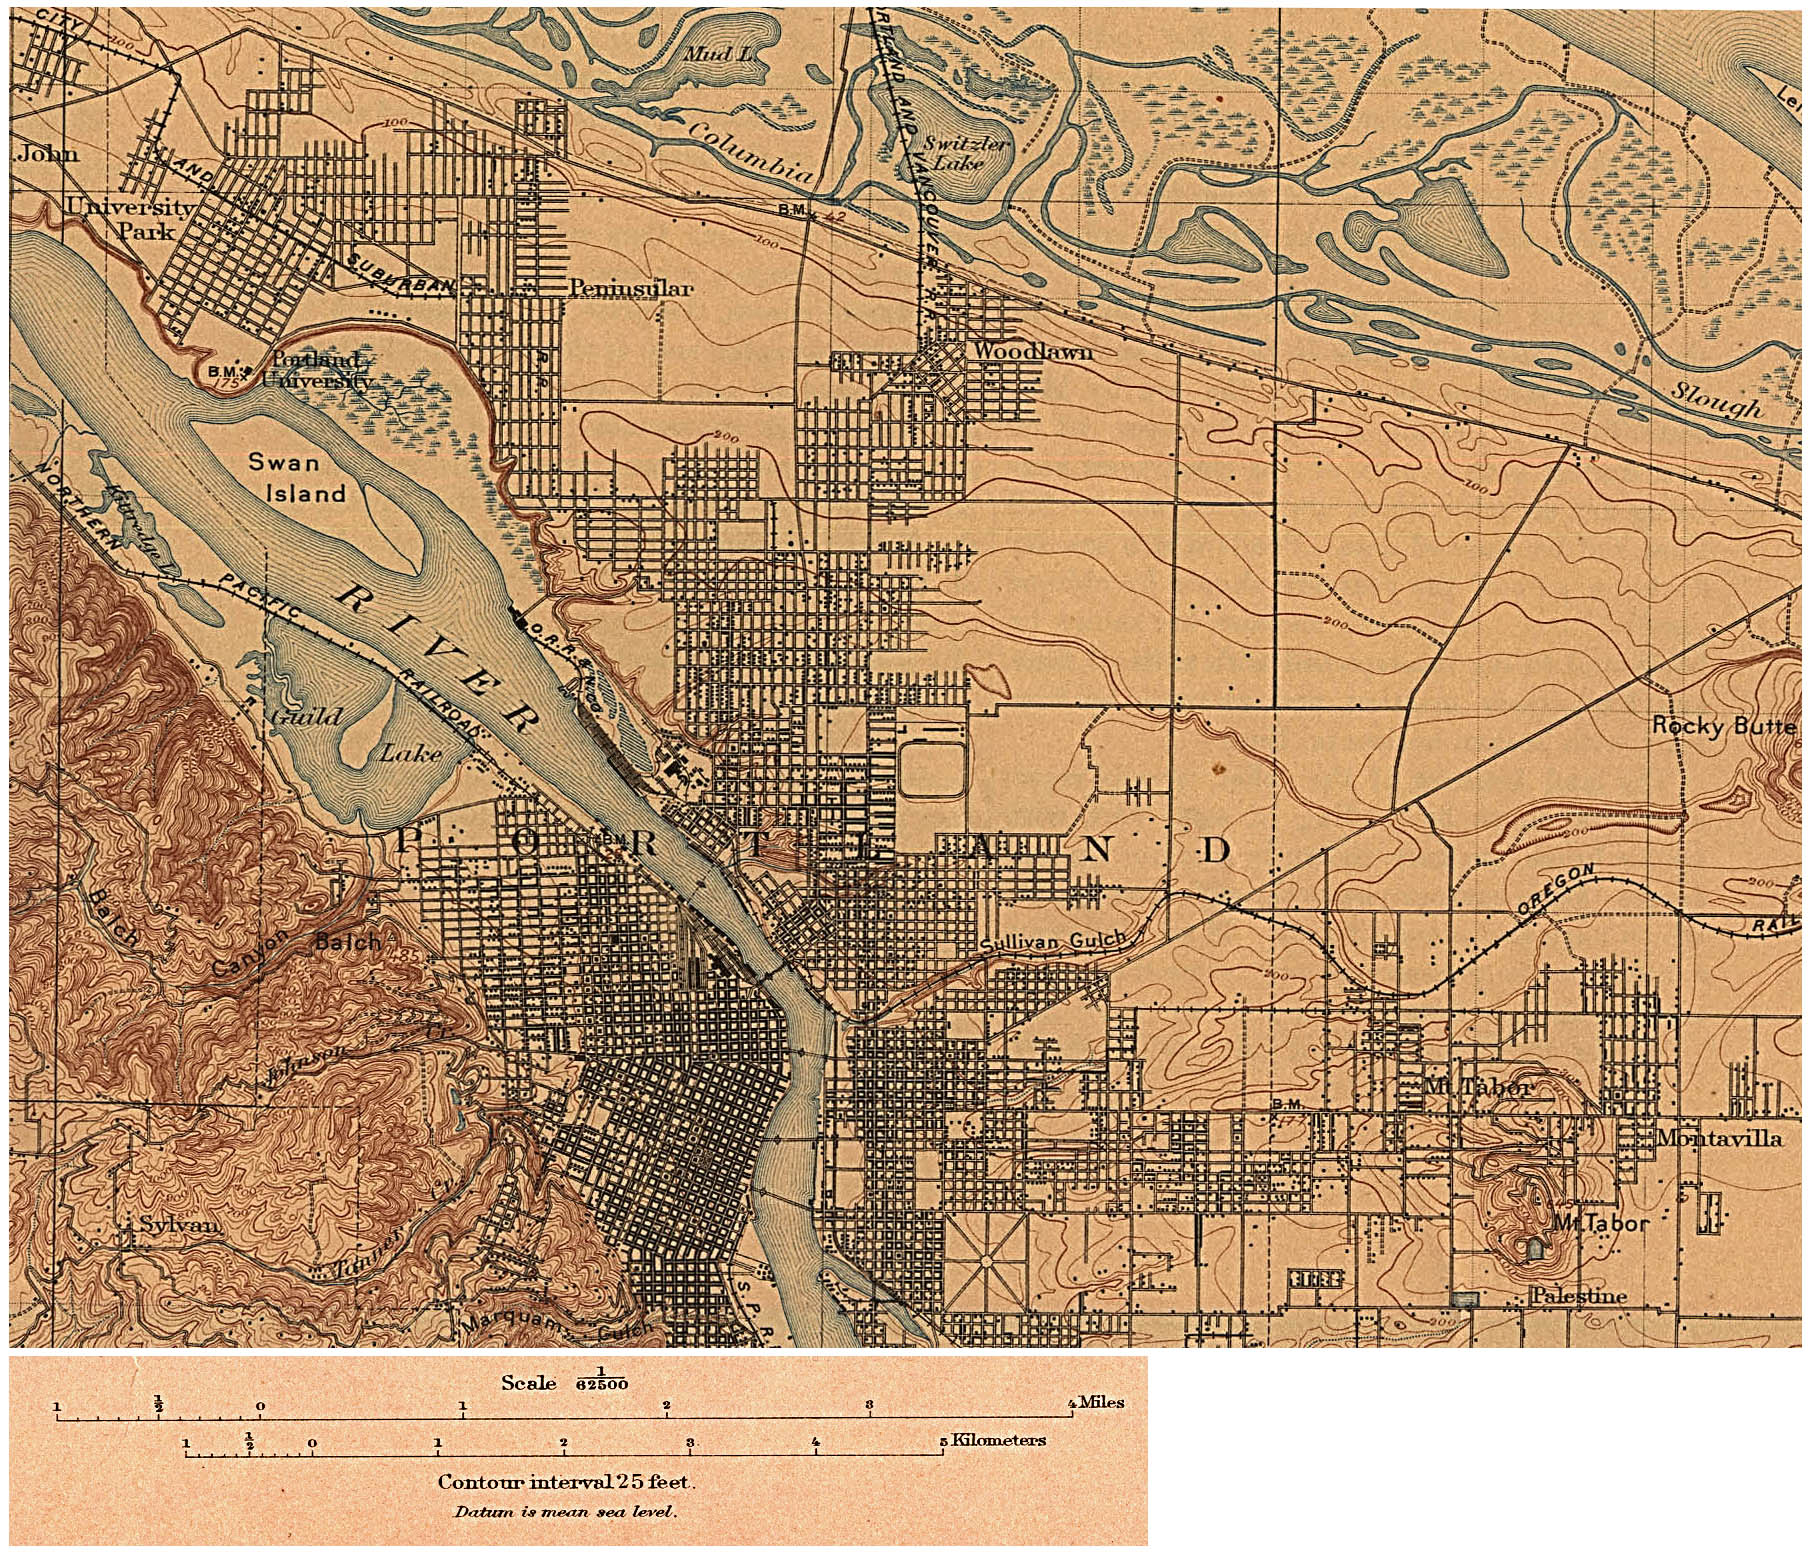 Portland City Map, Oregon, United States 1897